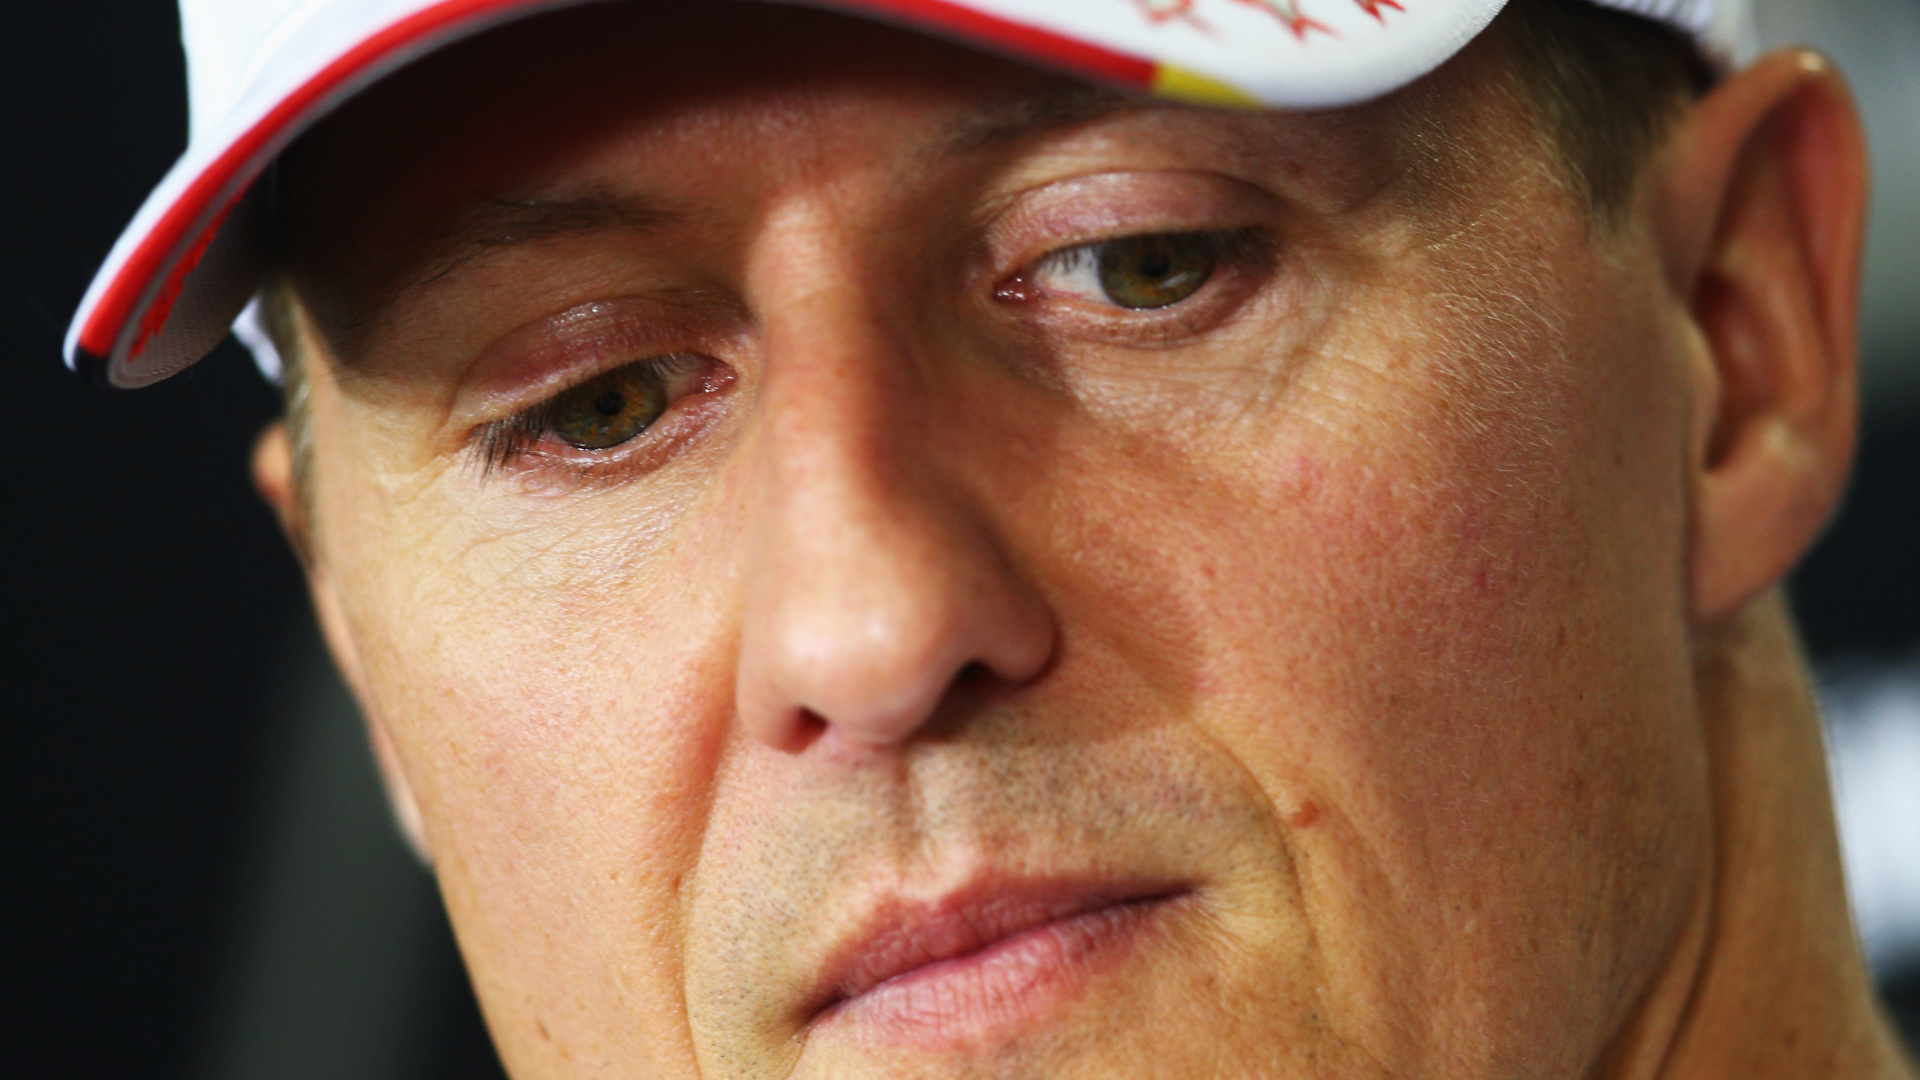 The mystery of Michael Schumacher's health condition